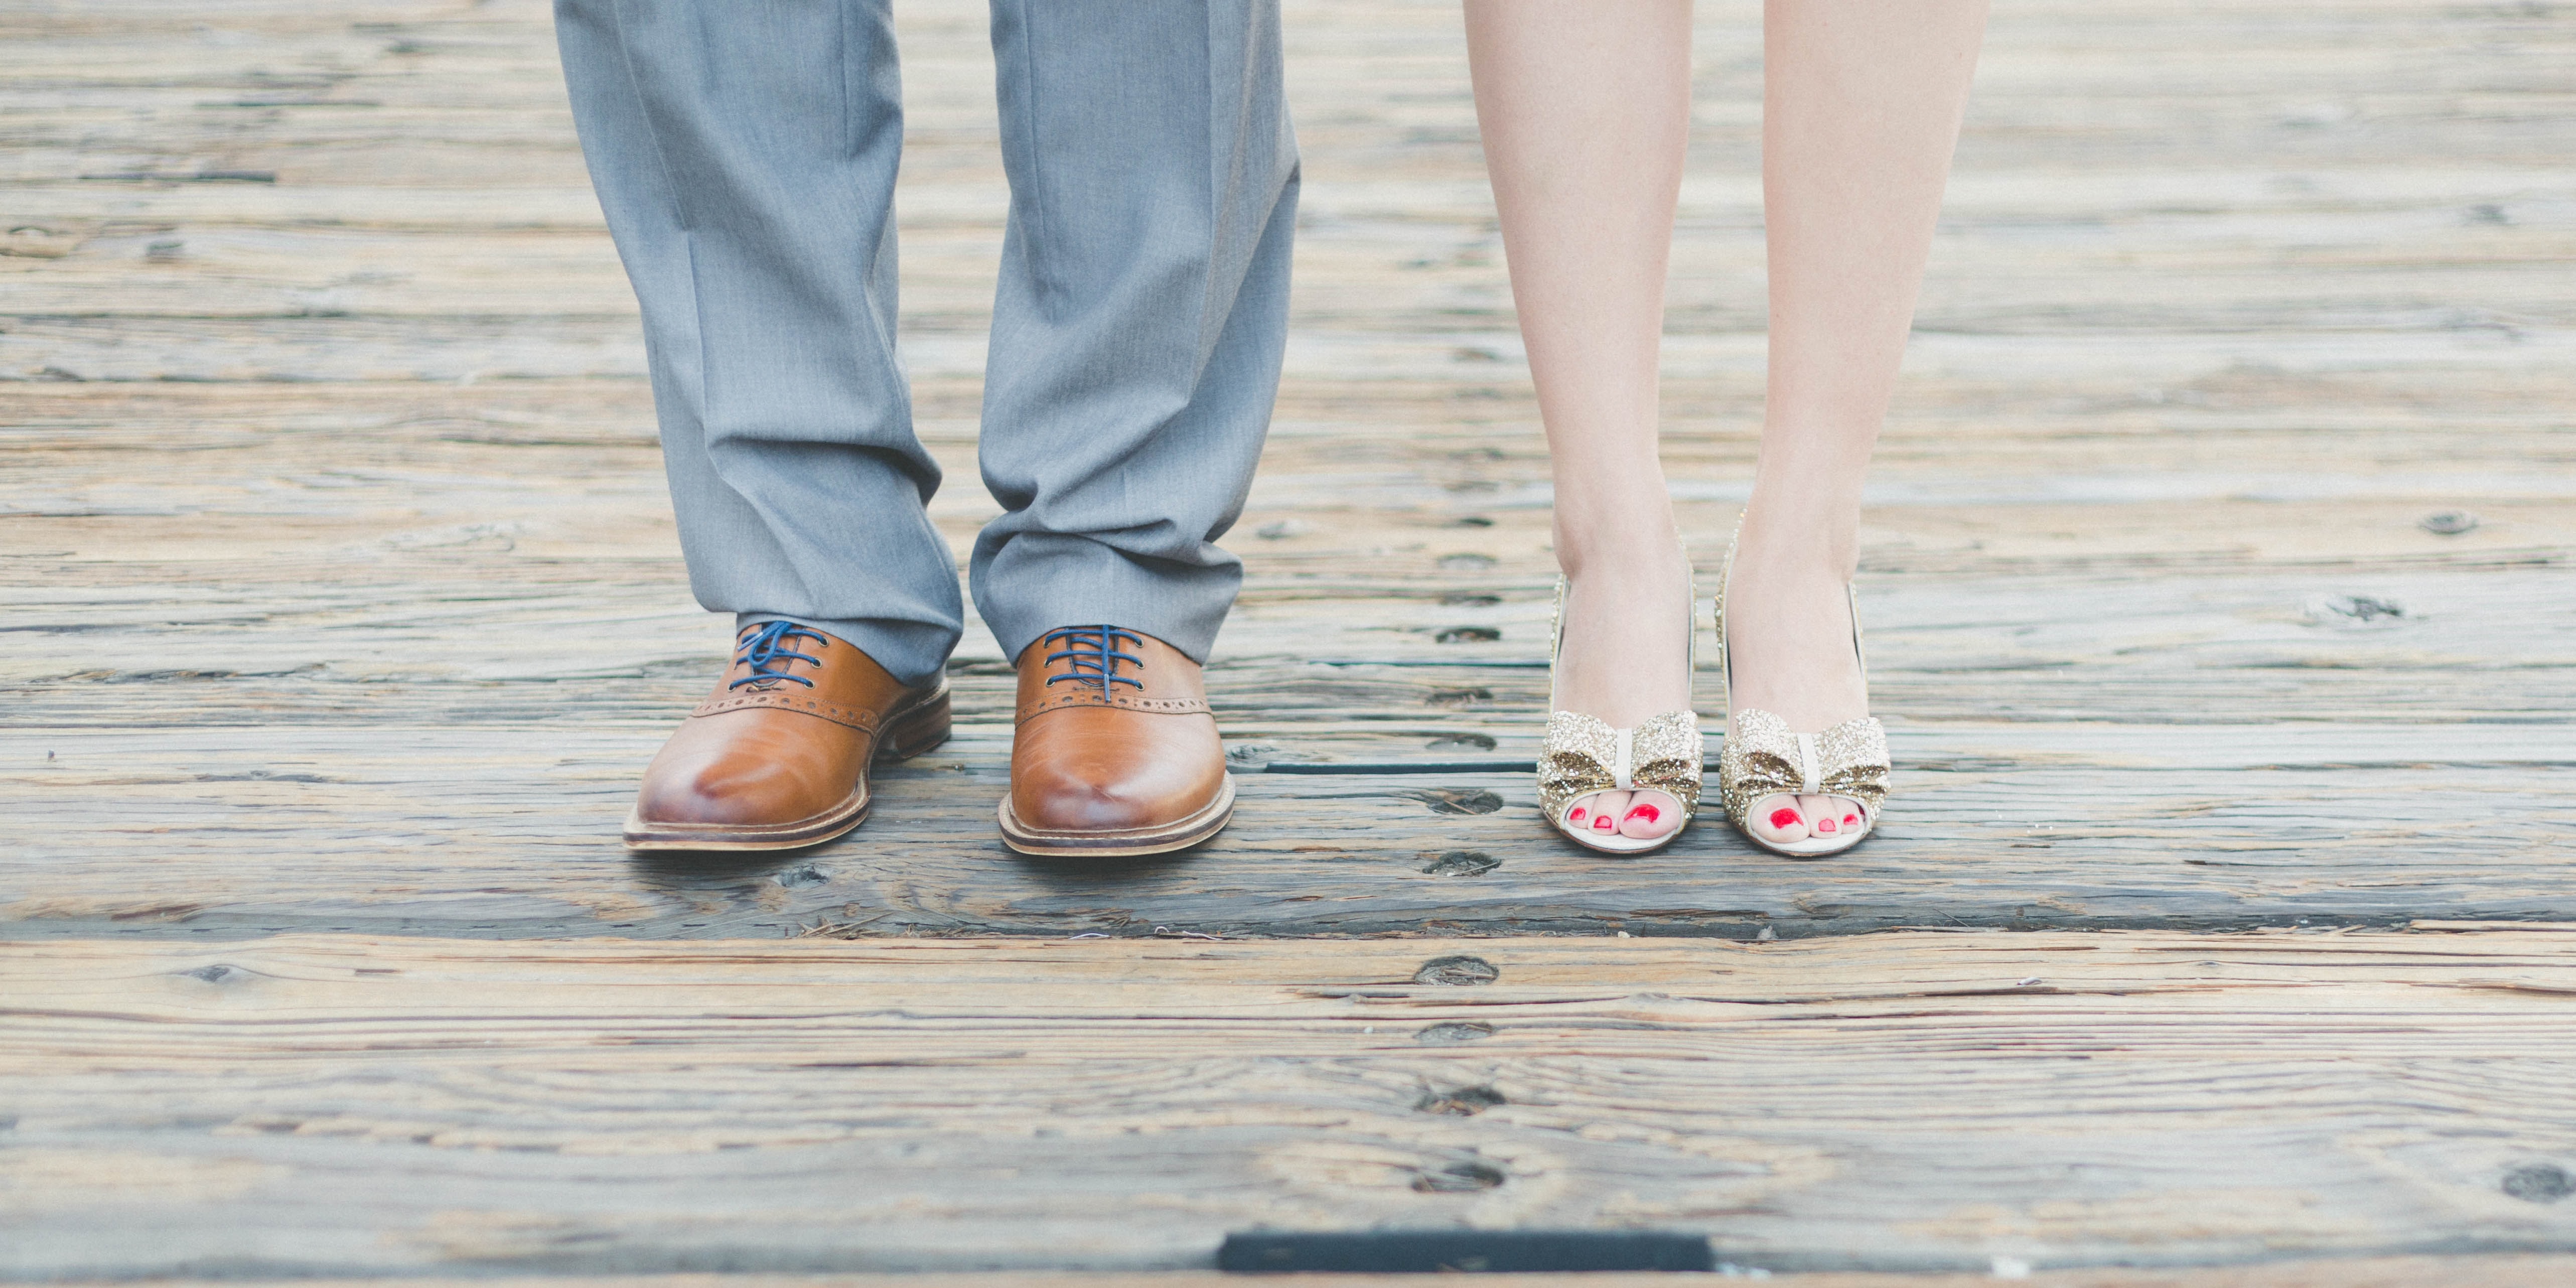 A man and woman's feet in nice shoes and dress pants for a wedding in San Francisco